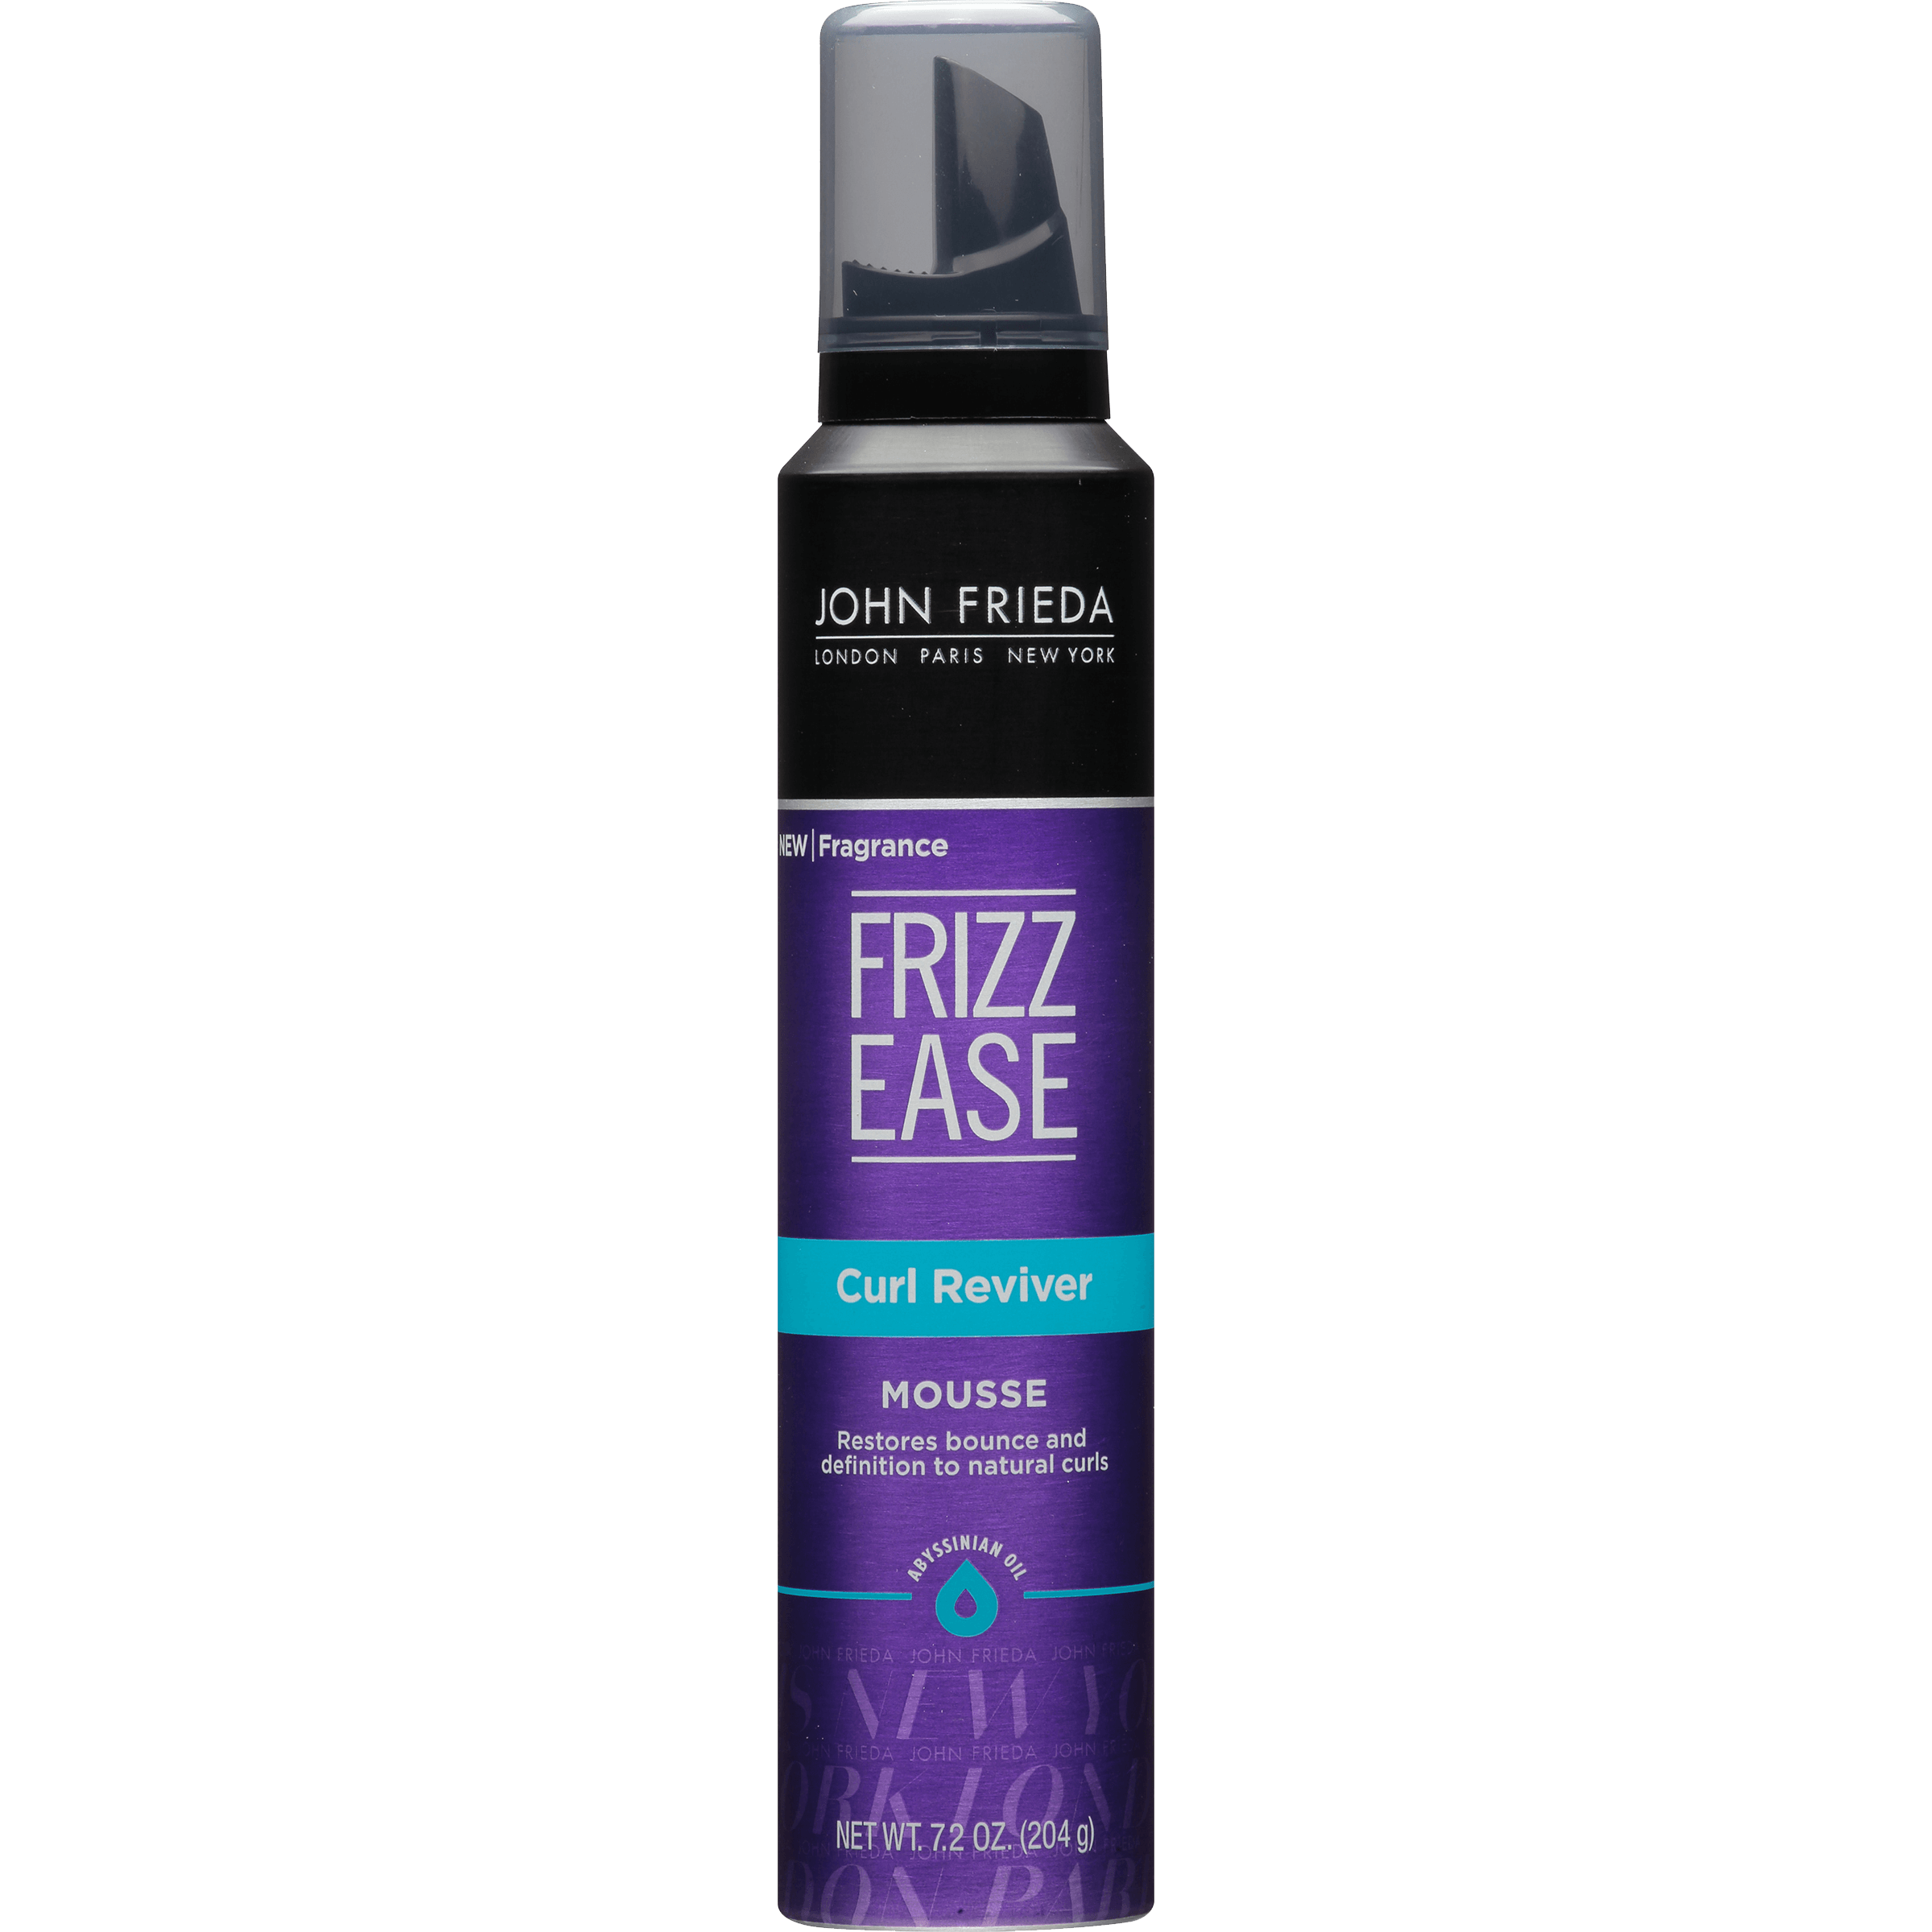 Frizz Ease Curly Reviver Styling Mousse